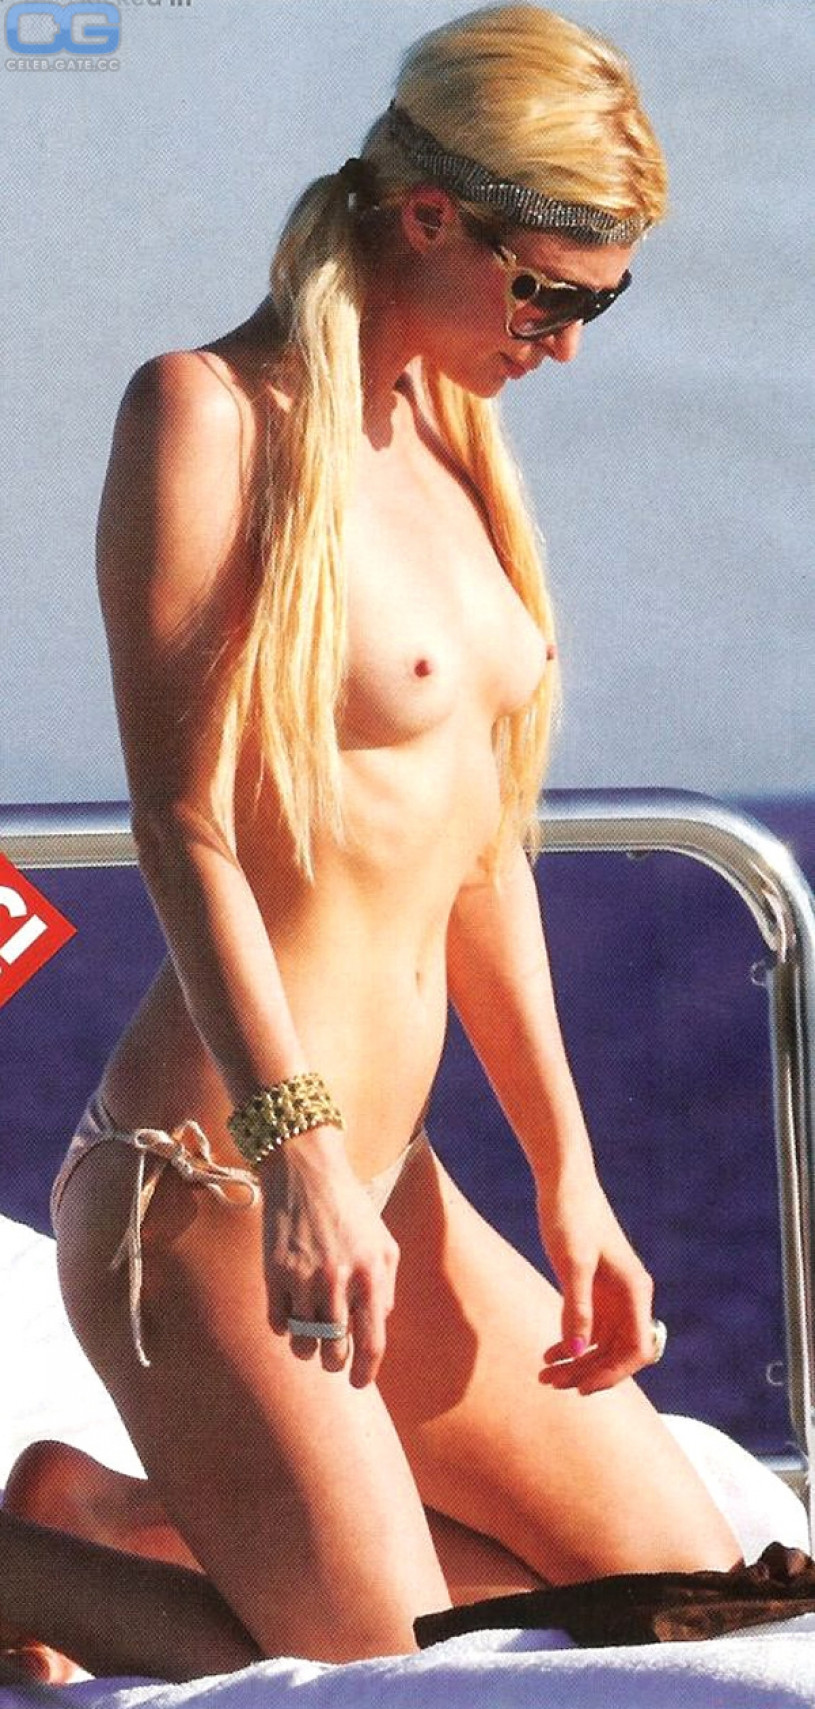 paris-hilton-topless-pictures-big-booty-breast-nude